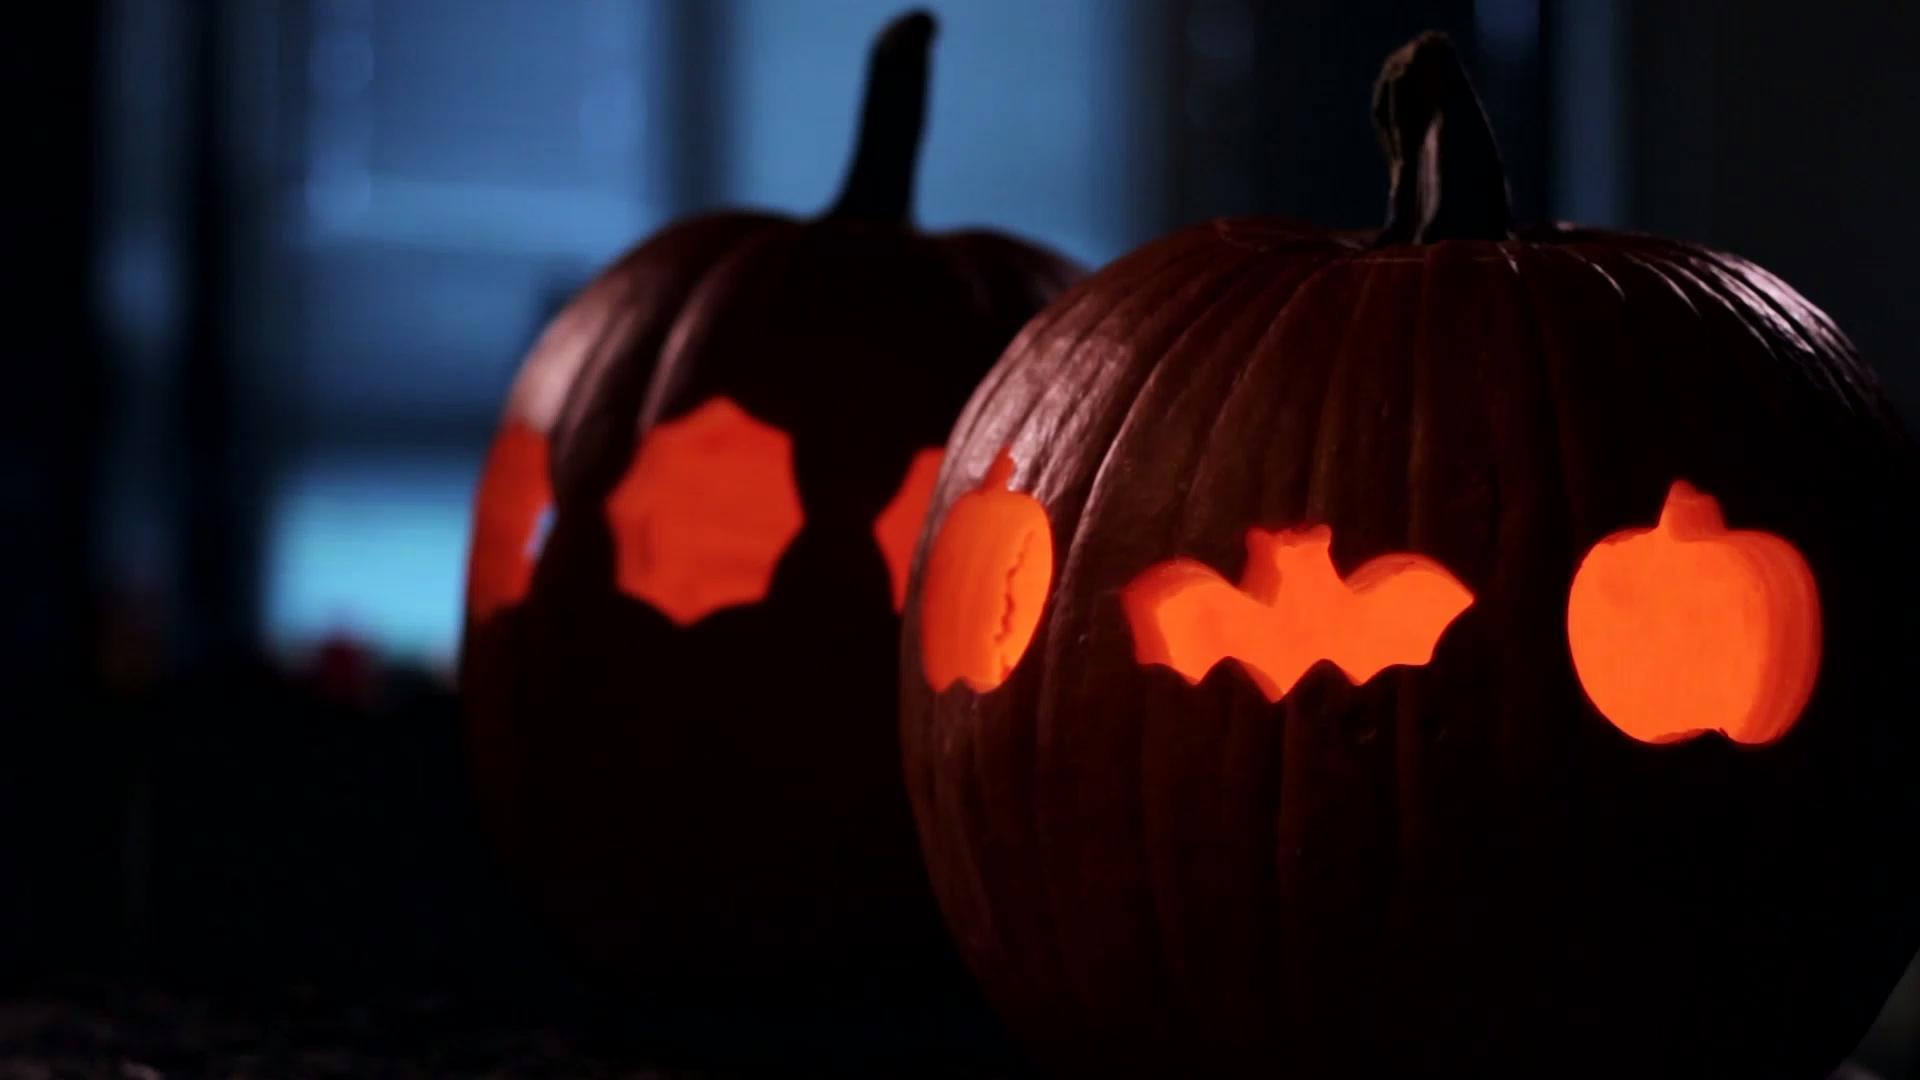 Great pumpkin carving ideas to delight and terrify your neighbours also on huffpost pronofoot35fo Image collections